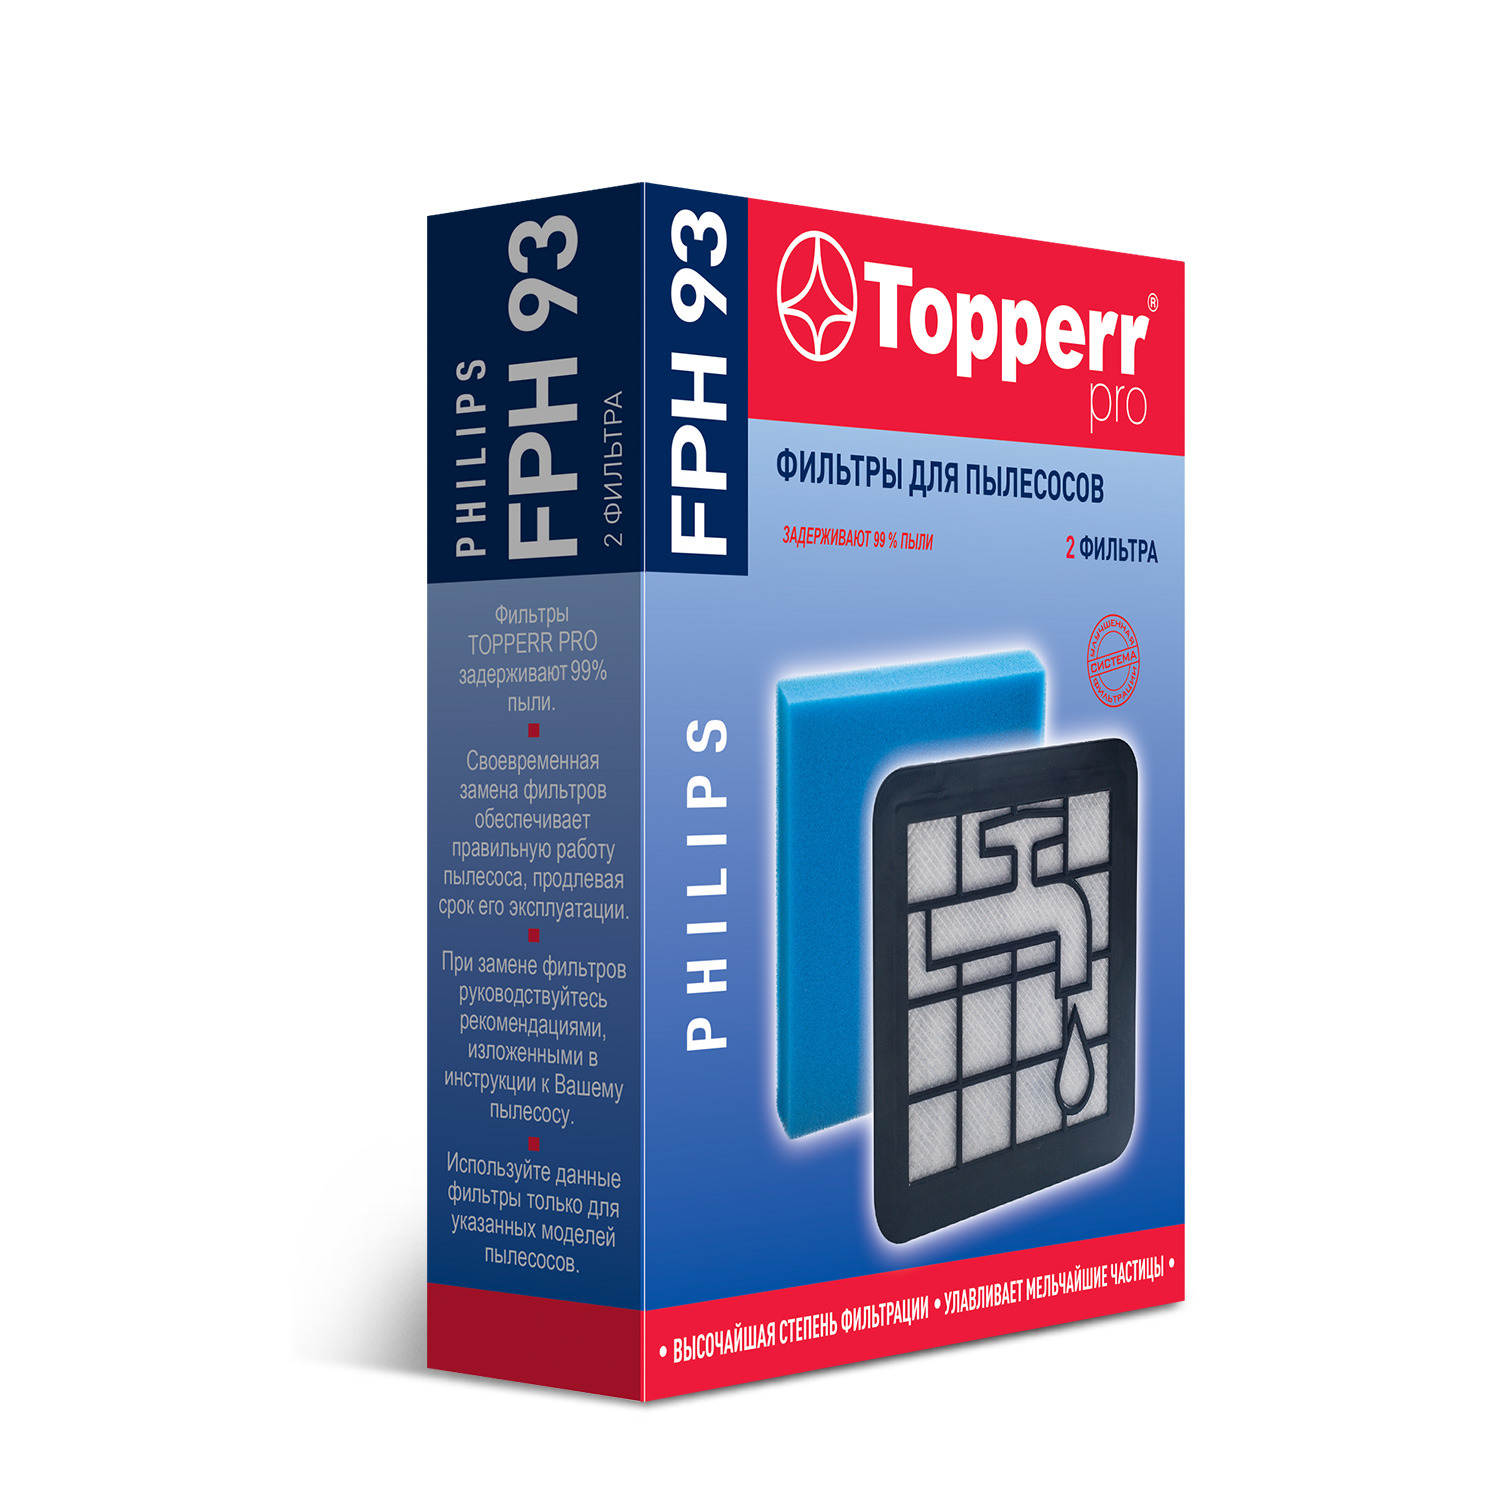 Фильтры Topperr Pro 1171 FPH 93, для пылесоса Philips, 2 шт 10set fc 6p fc 8p fc 10p fc 14p fc 16p to fc 40p idc socket 2x5 pin dual row pitch 2 54mm idc connector 10 pin cable socket